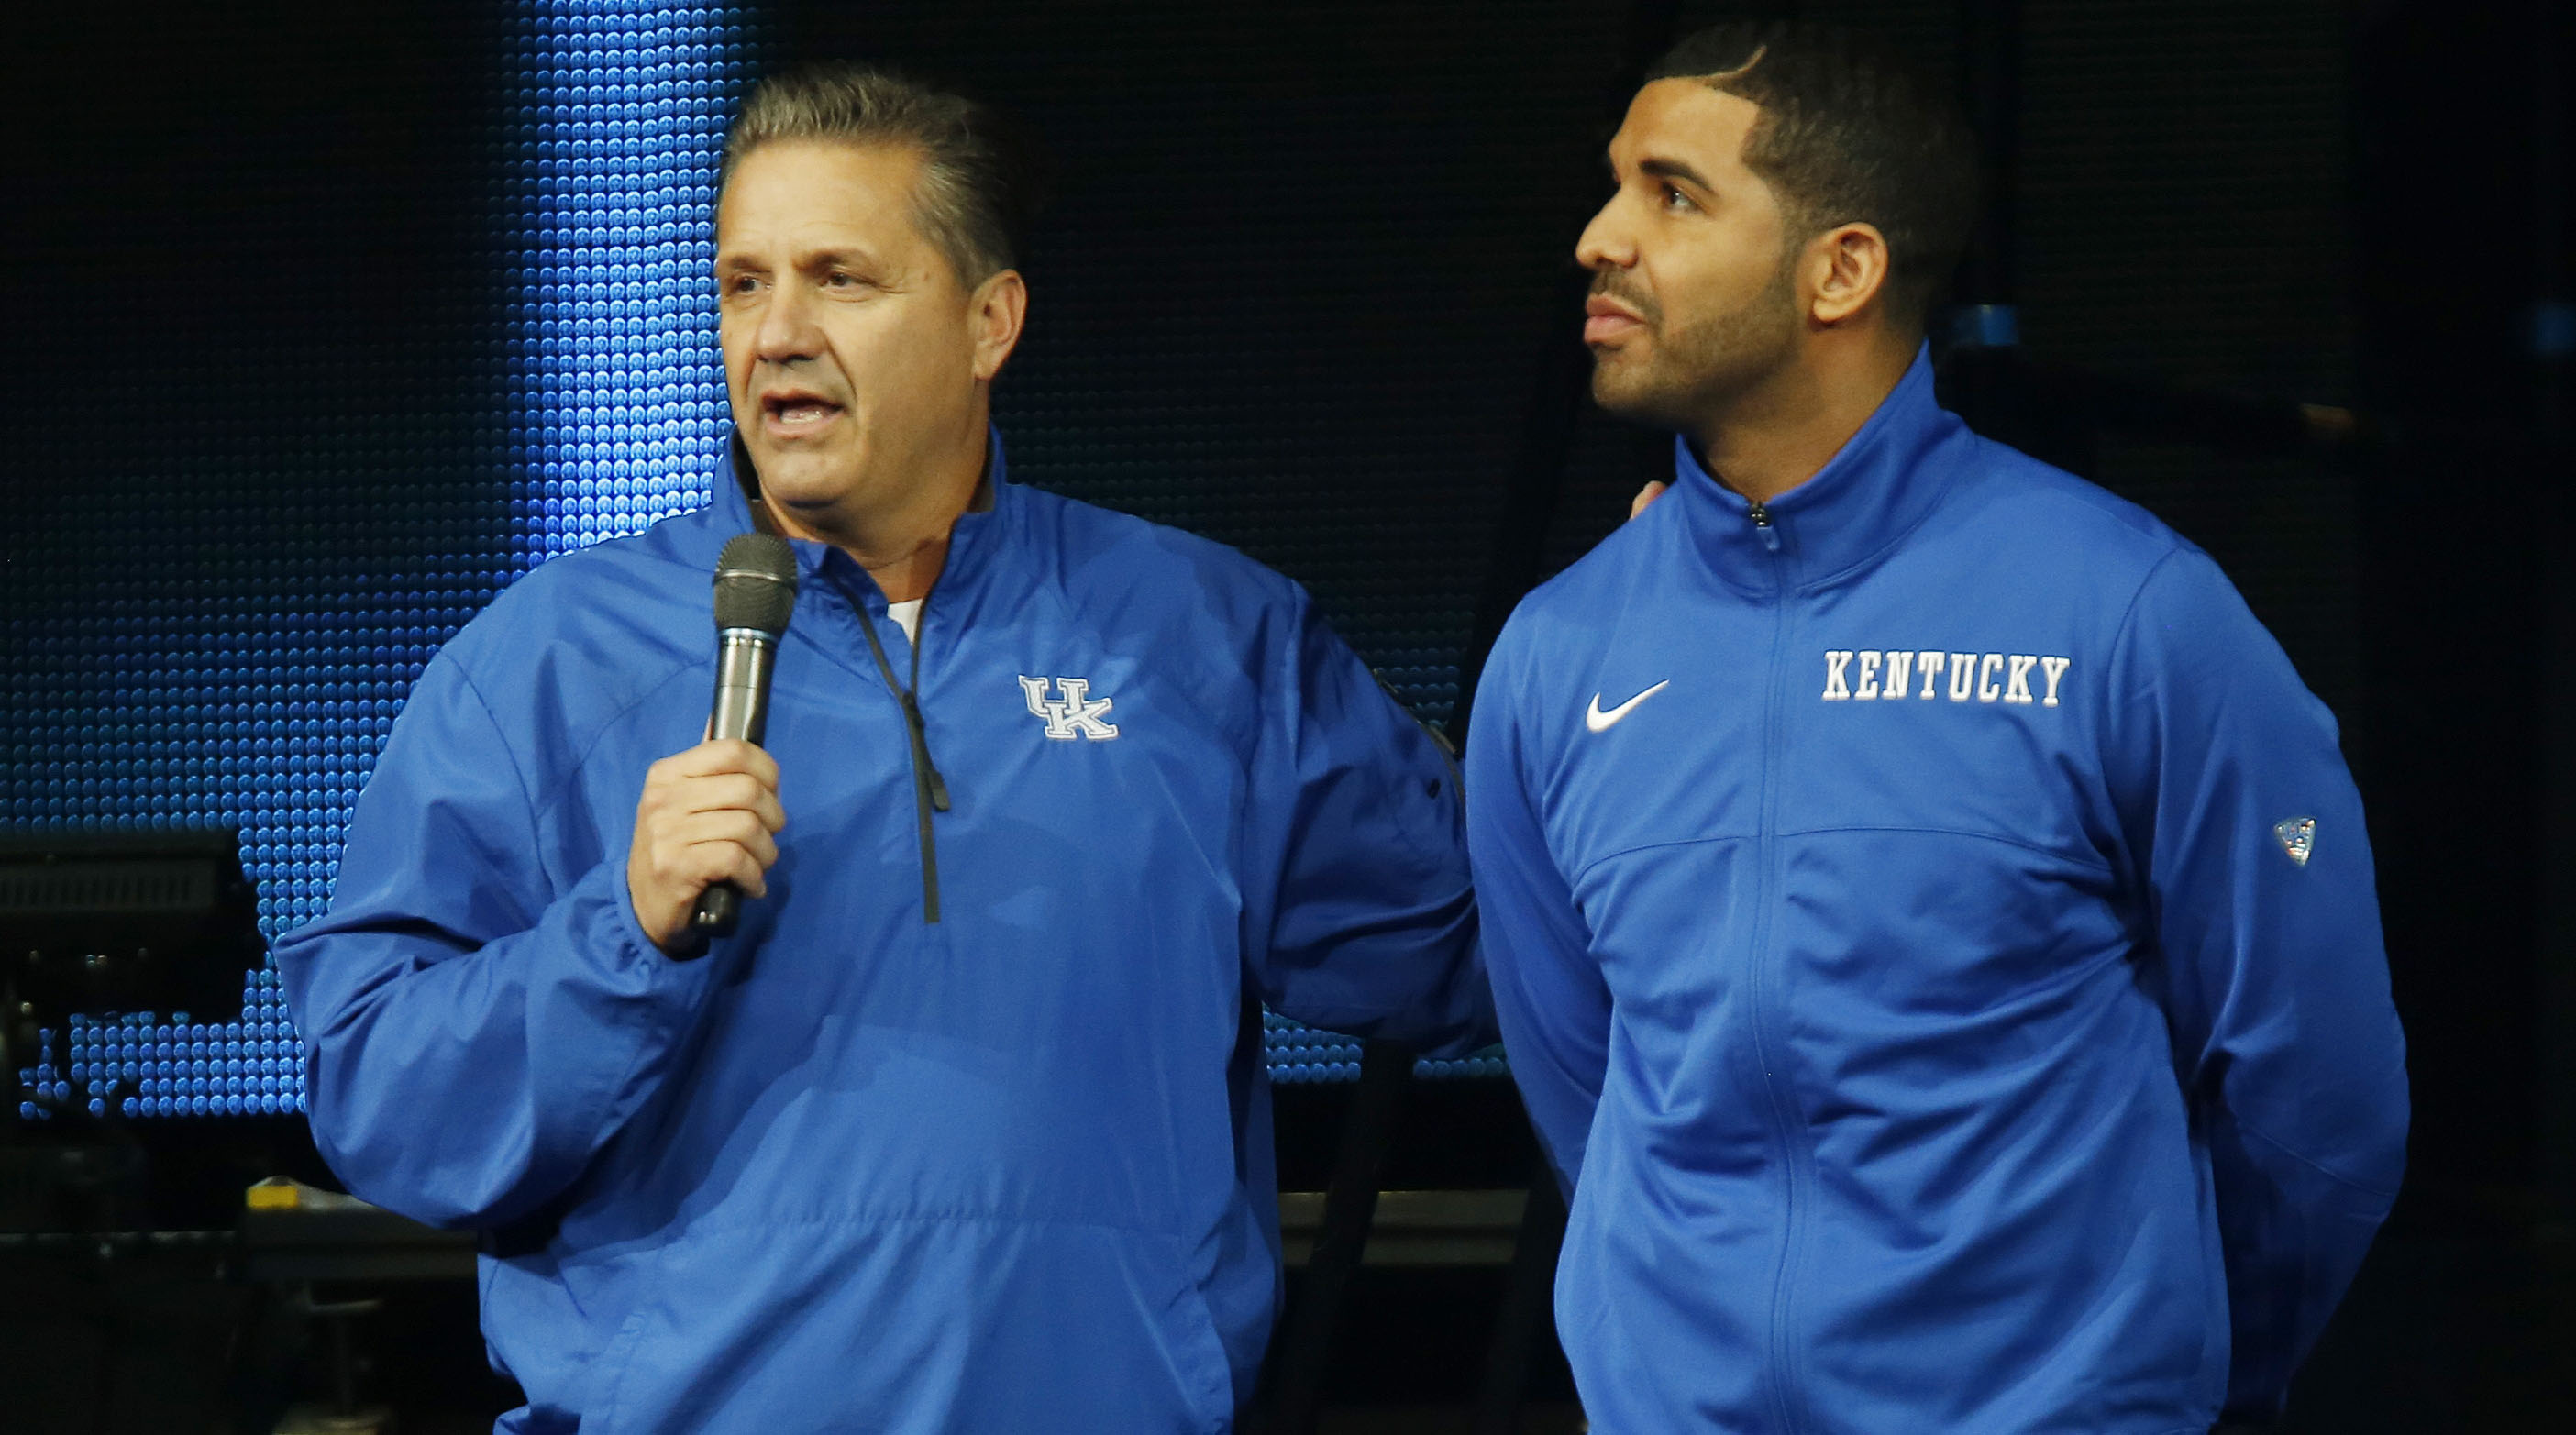 Drake Goes Full Drake Wearing Kentucky Gear to Play Ball at UCLA